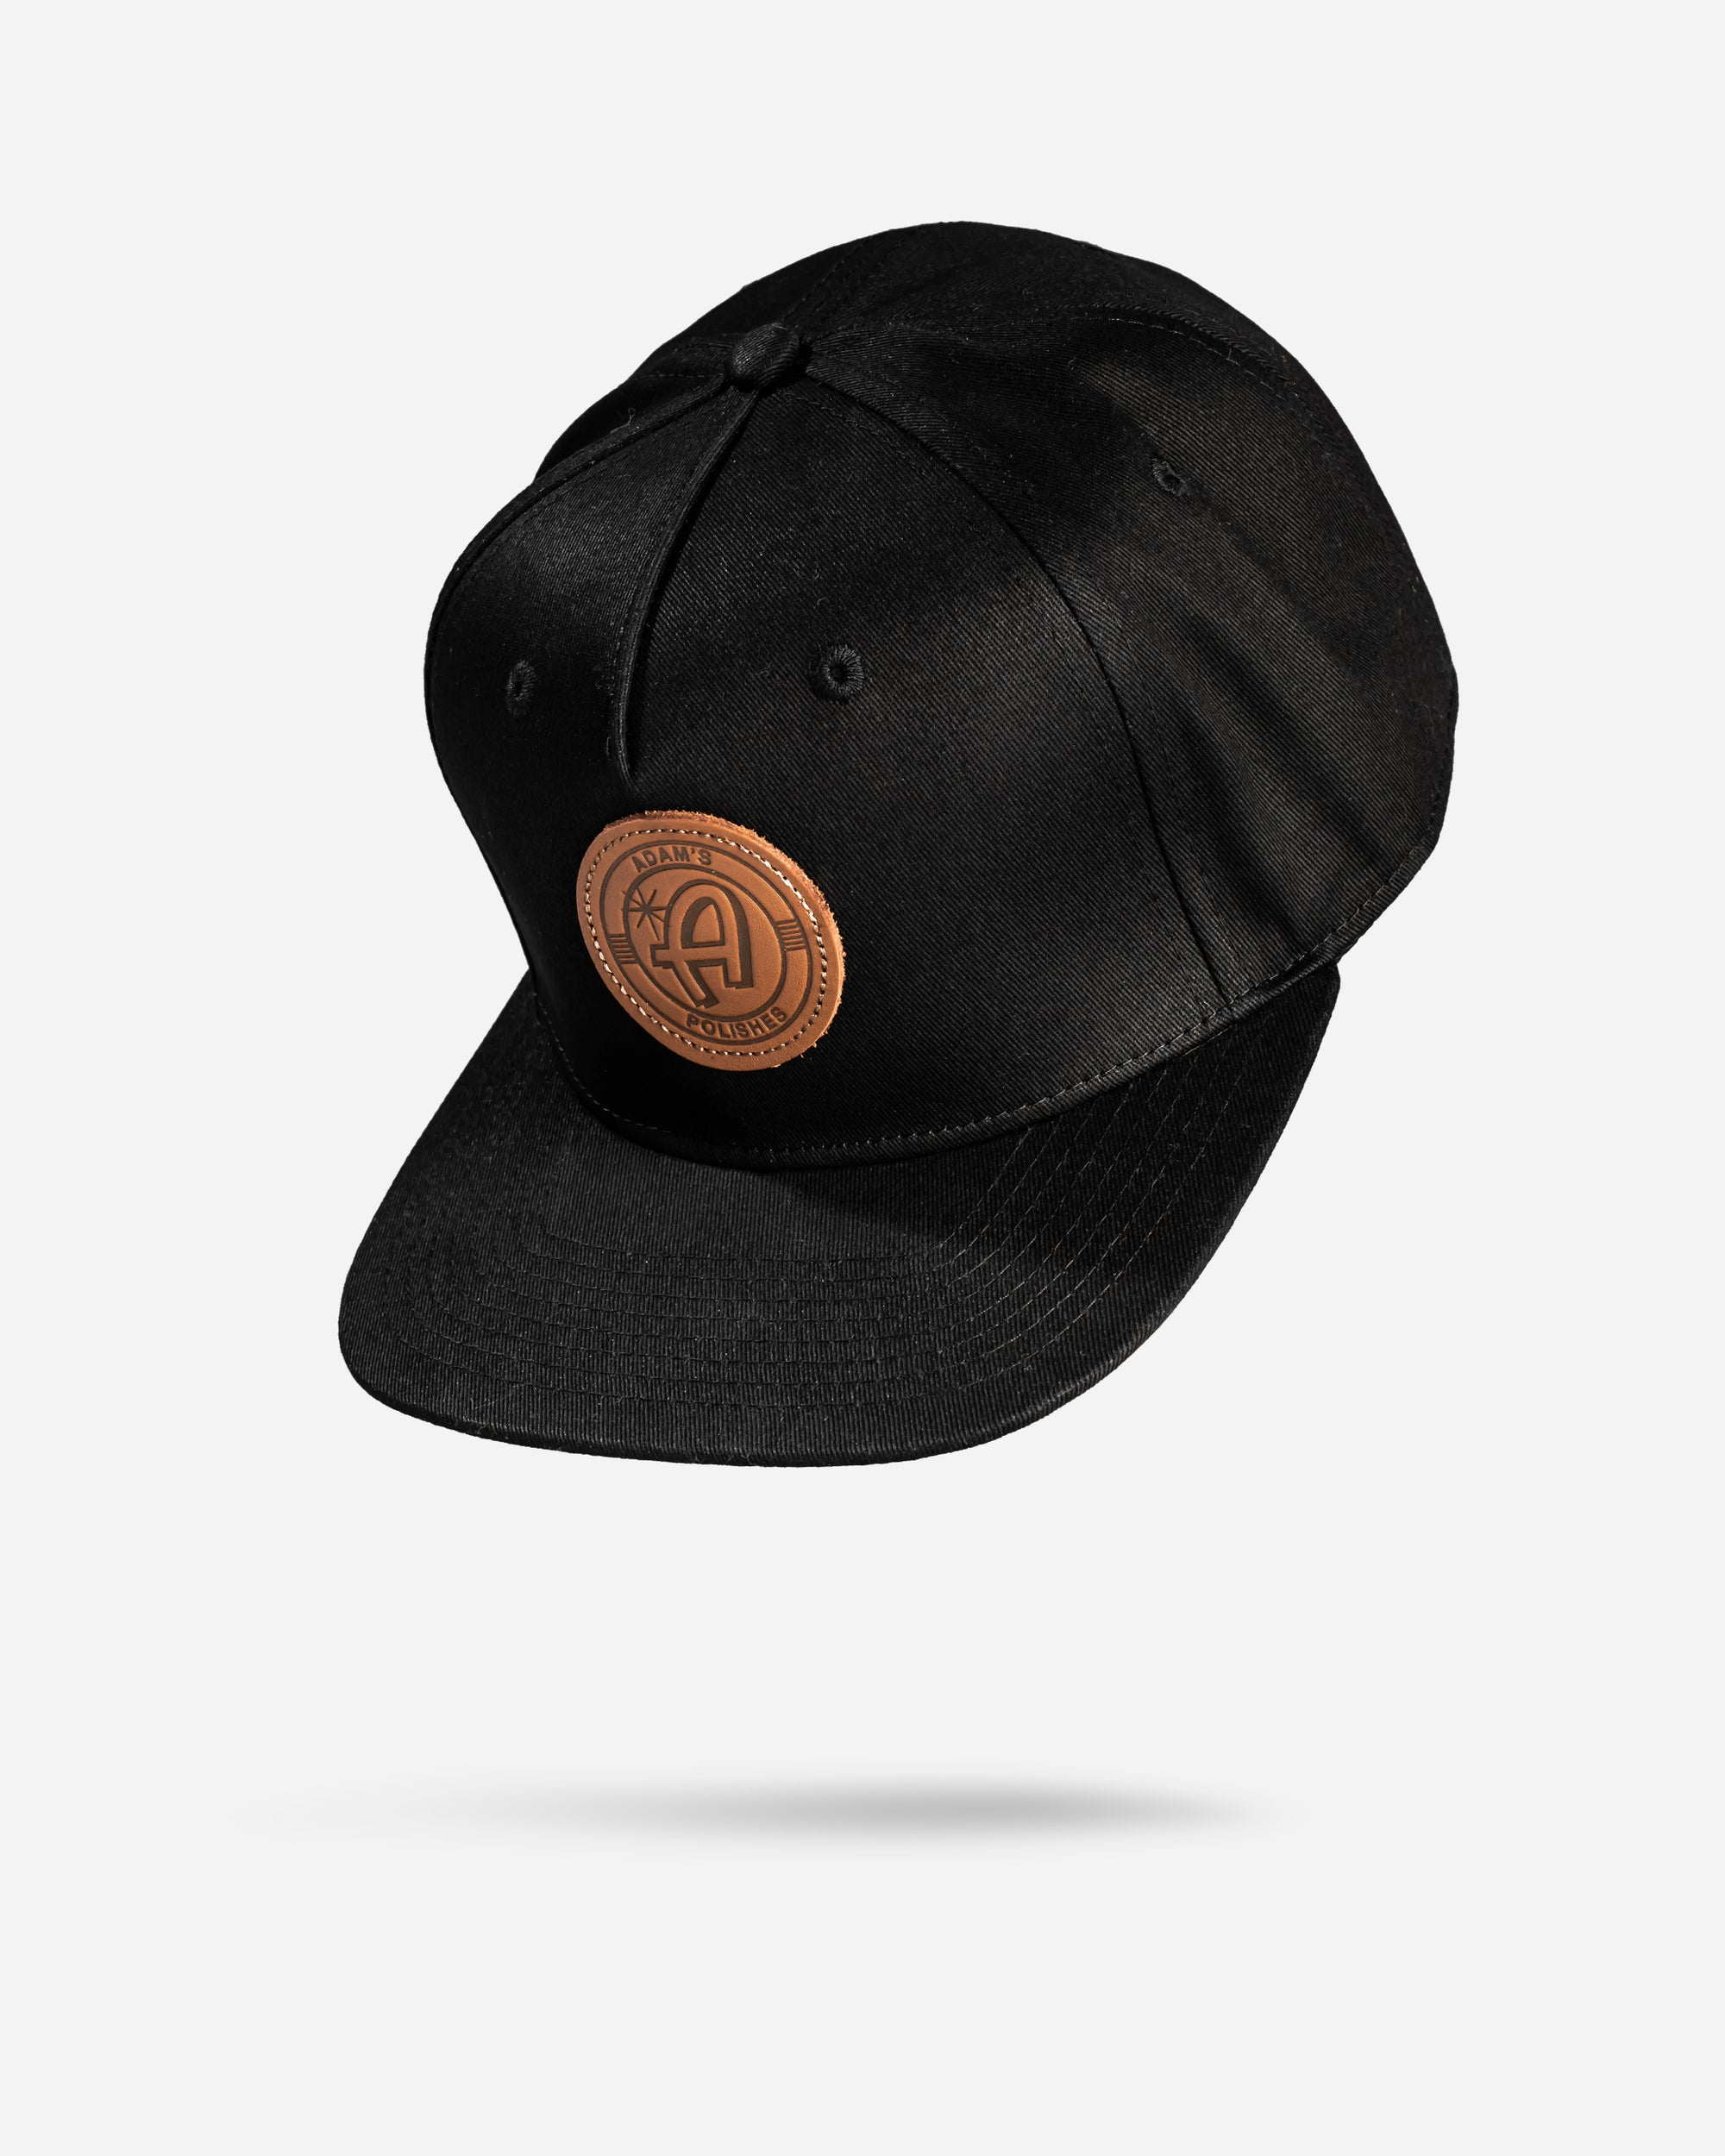 Adam's Black Snapback - Brown Patch